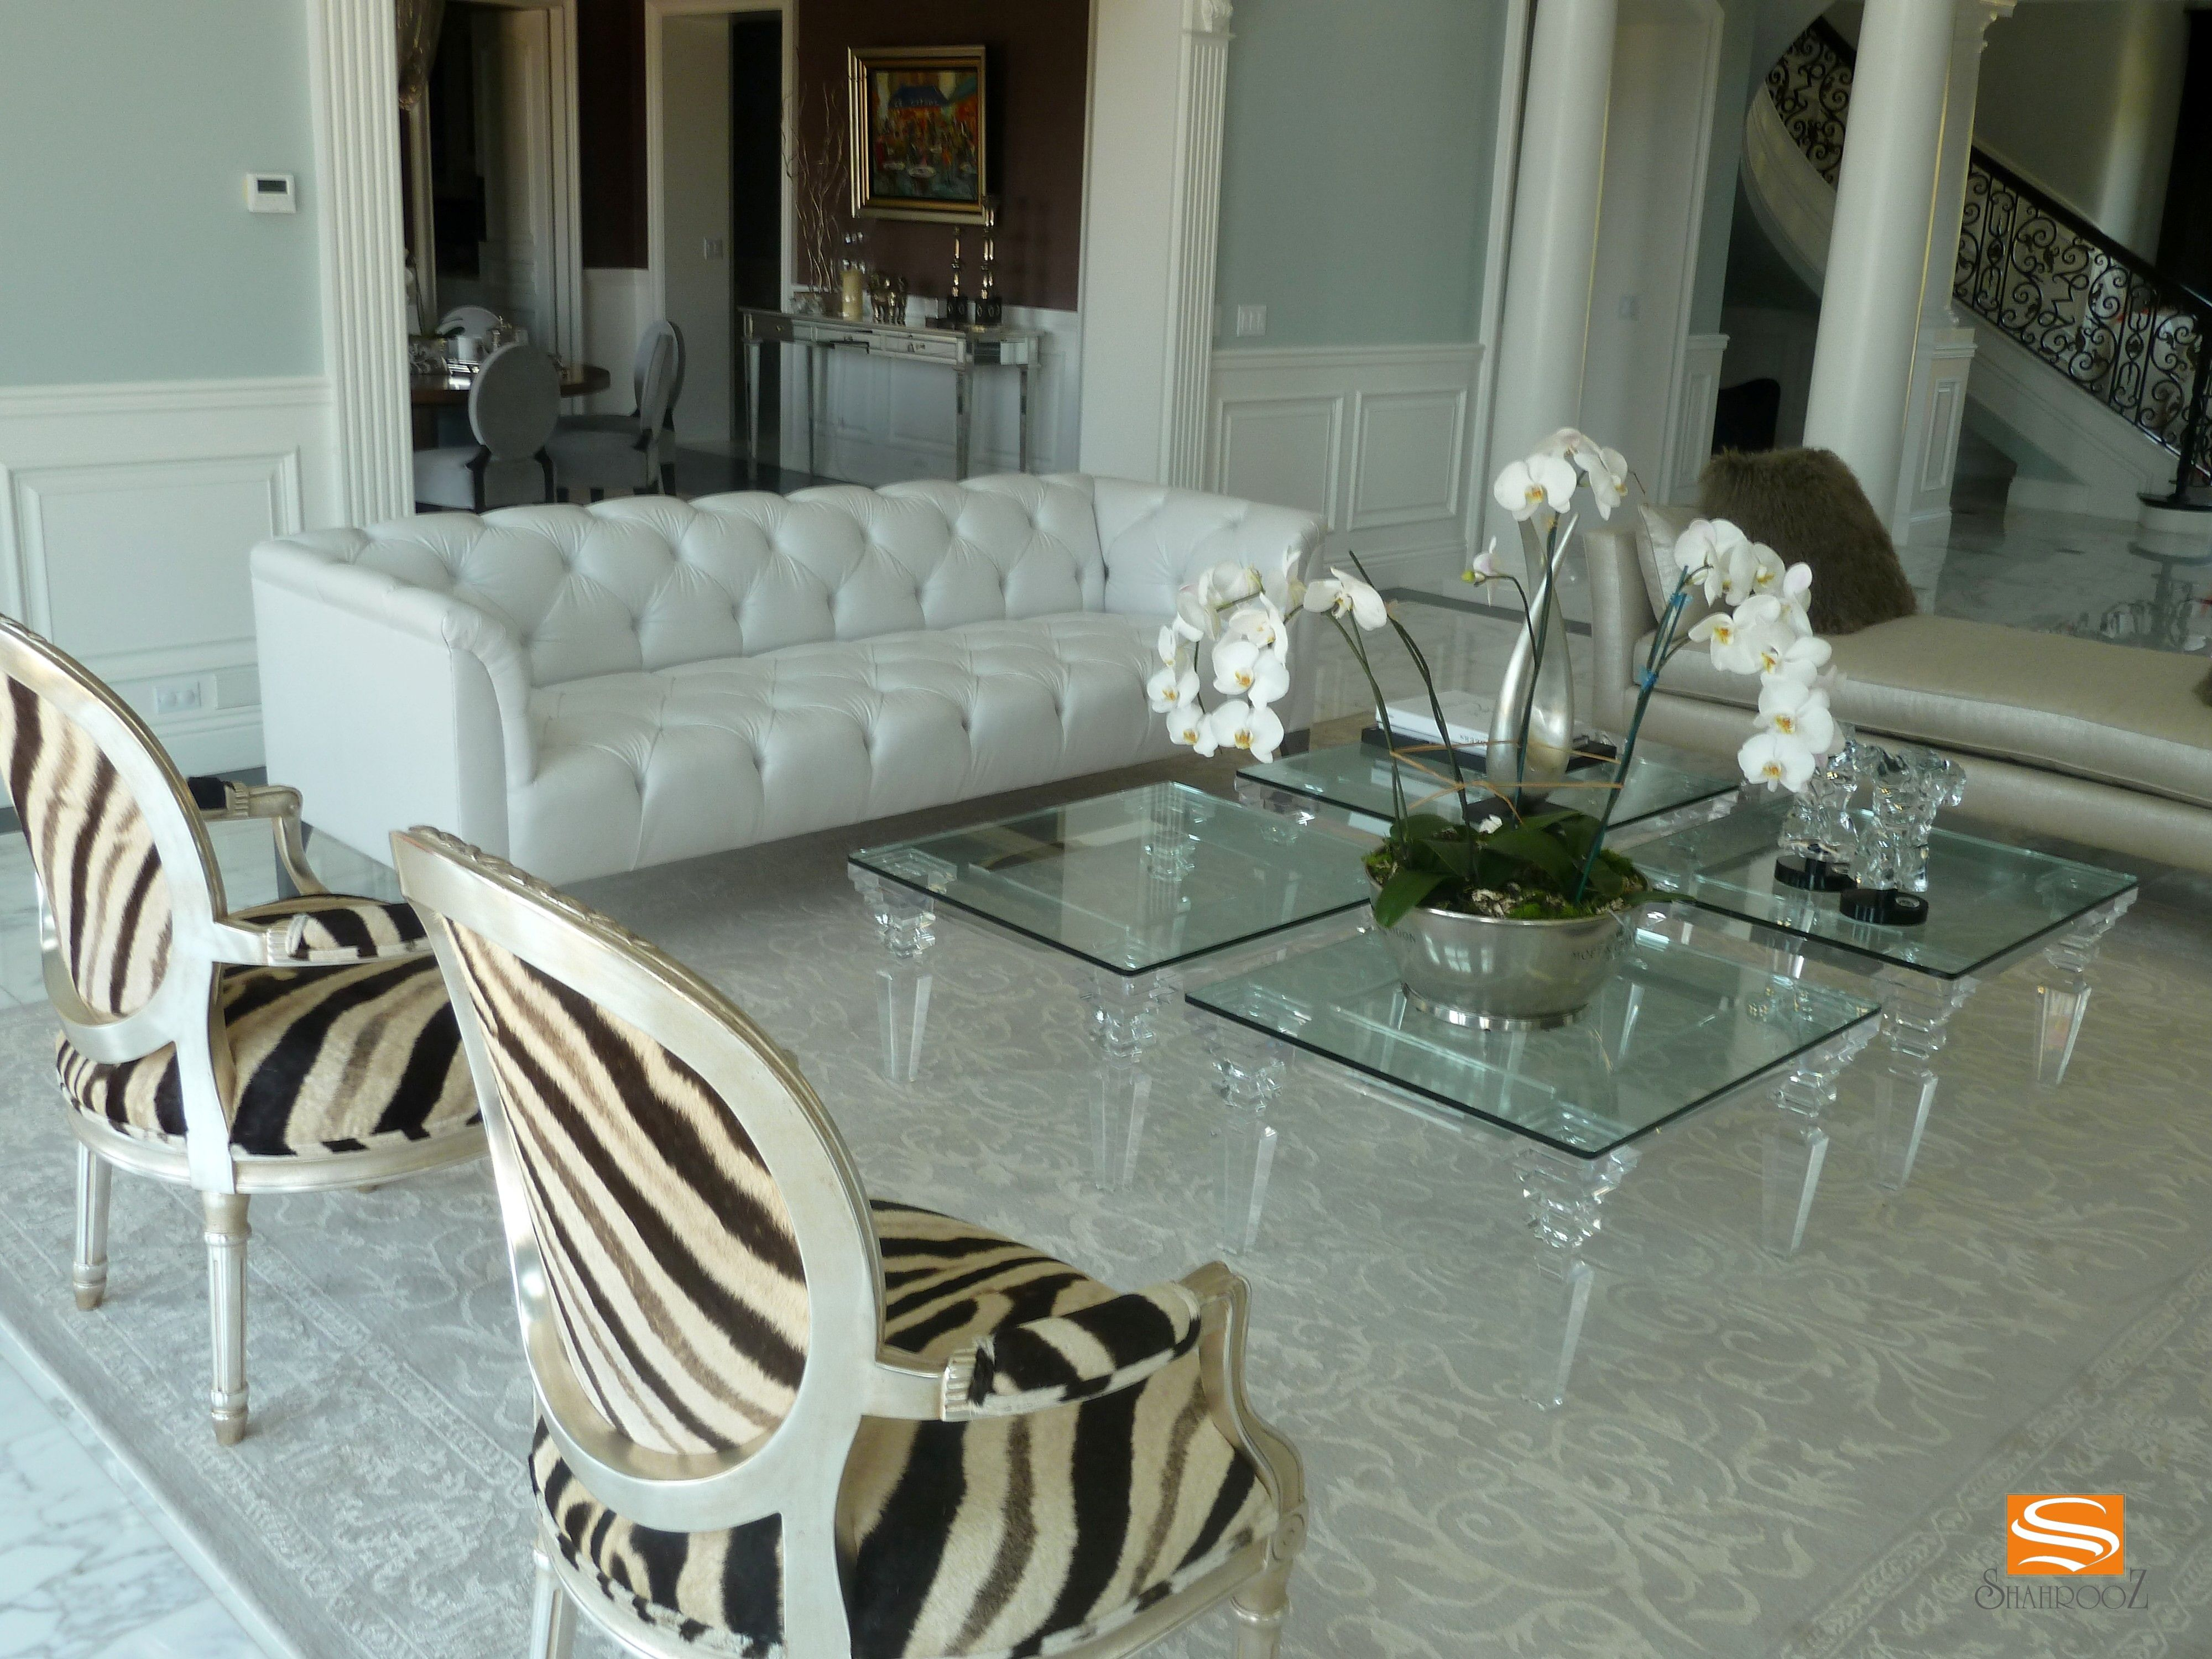 Attractive Acrylic Fantasia Cocktail Tables Designed By Shahrooz, U0026 Interior Design By  Shelley Star California Www